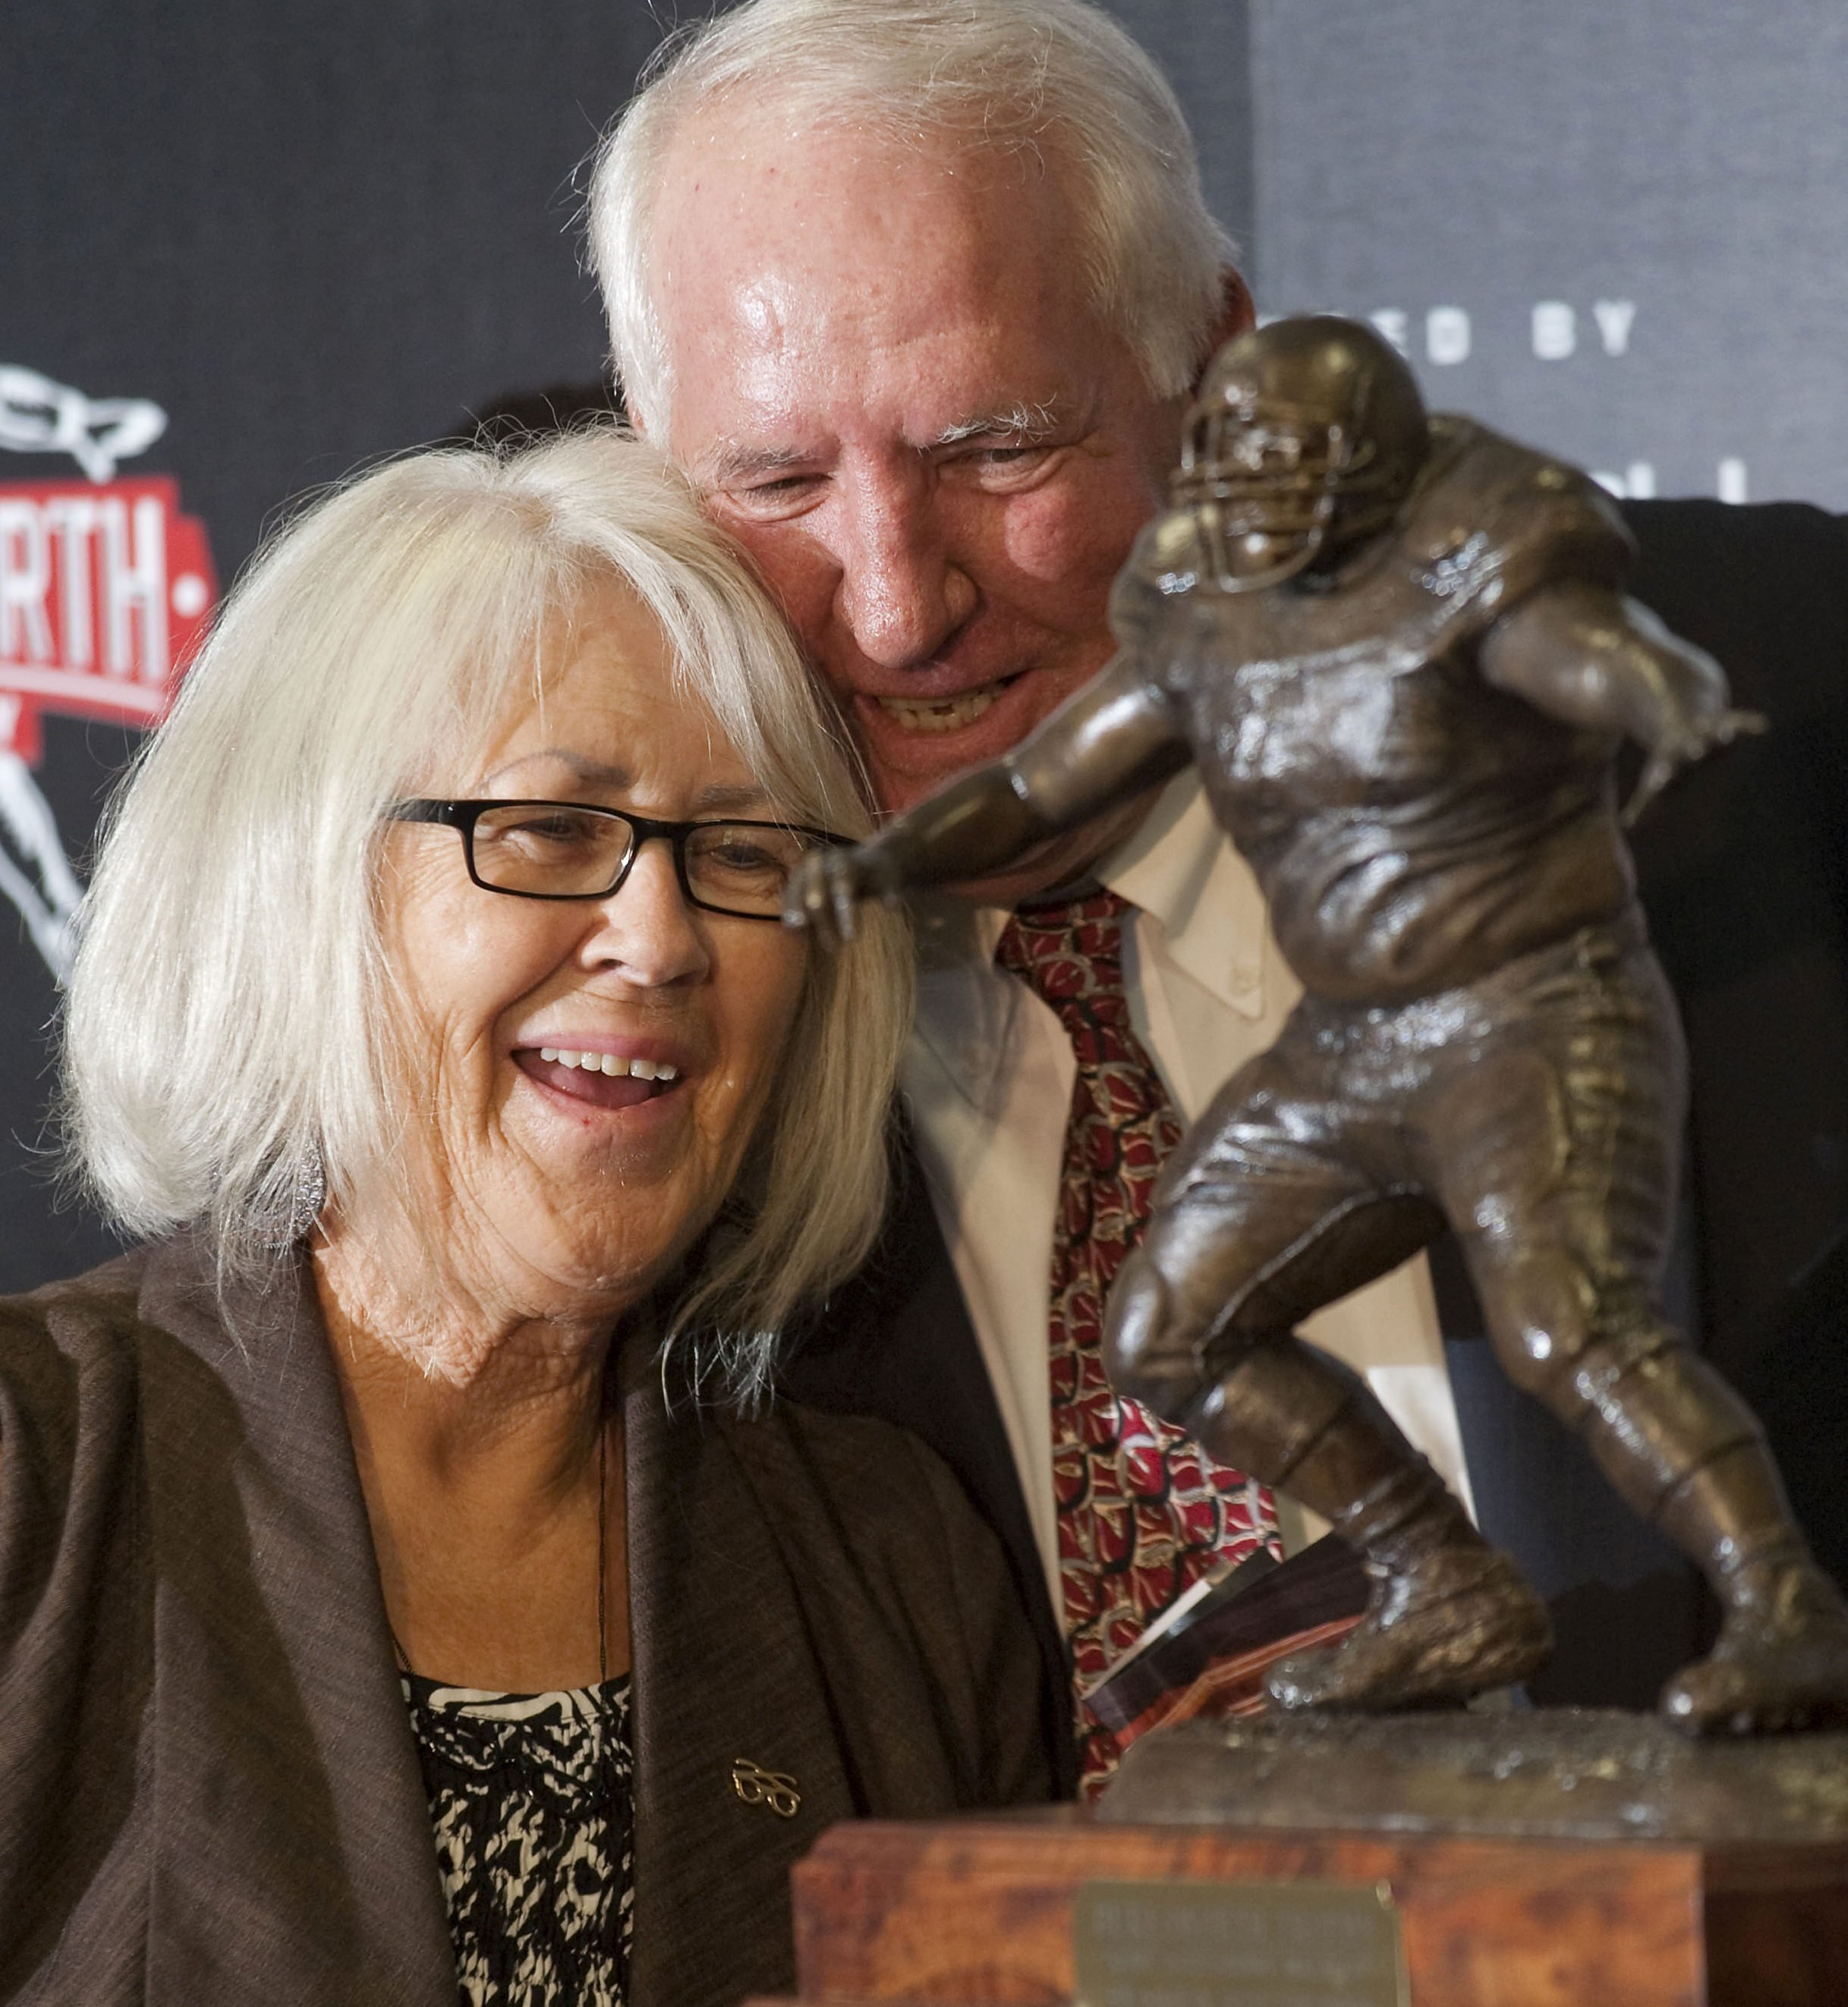 Former Arkansas head Coach Danny Ford hugs Barbara Burlsworth in August 2010 in Fayetteville after the unveiling of the Burslworth Trophy in honor of her son, Brandon. The trophy is given annually to a college player who started his career as a walk-on. (AP photo by Beth Hall)